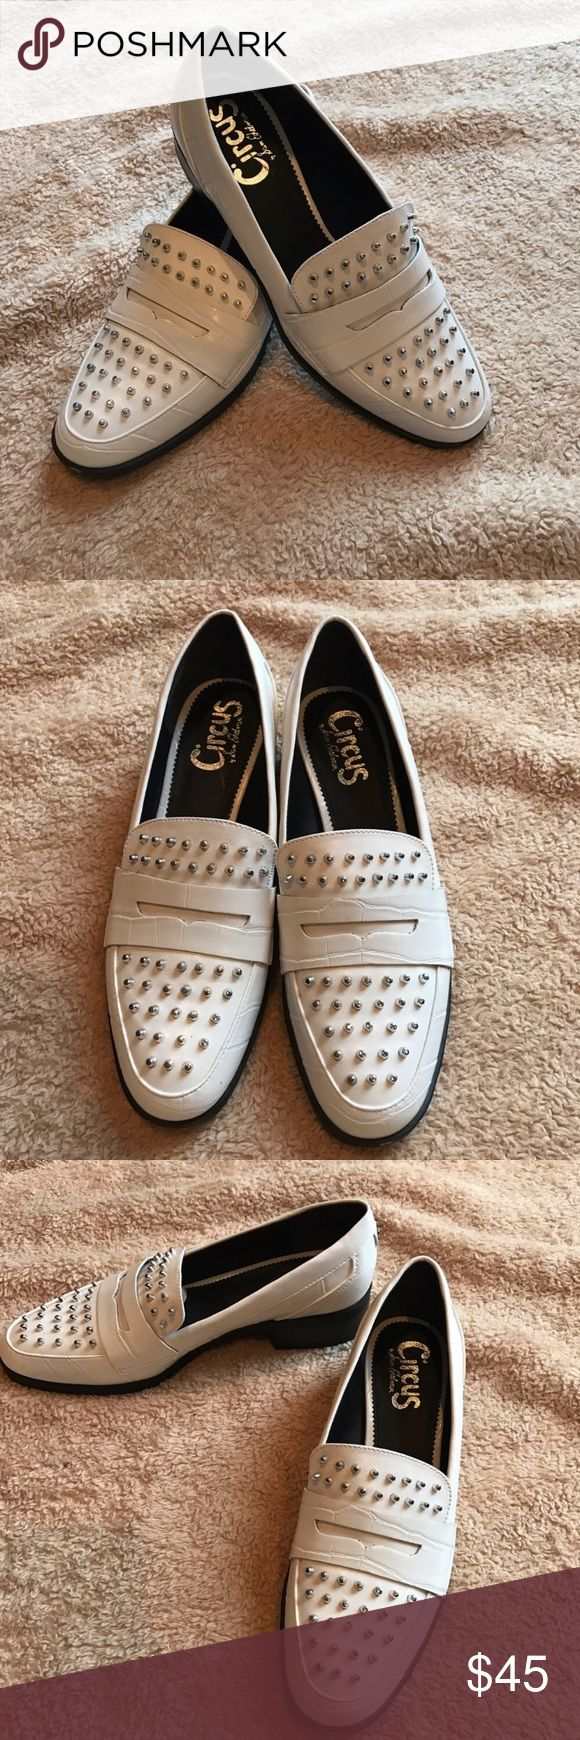 -Circus By Sam Edelman  White Studded Loafer NWOT Brand new never worn Stand out out in these sweet shoes!  Very attractive studded white textured, Circus by Sam Edelman Shoes Flats & Loafers